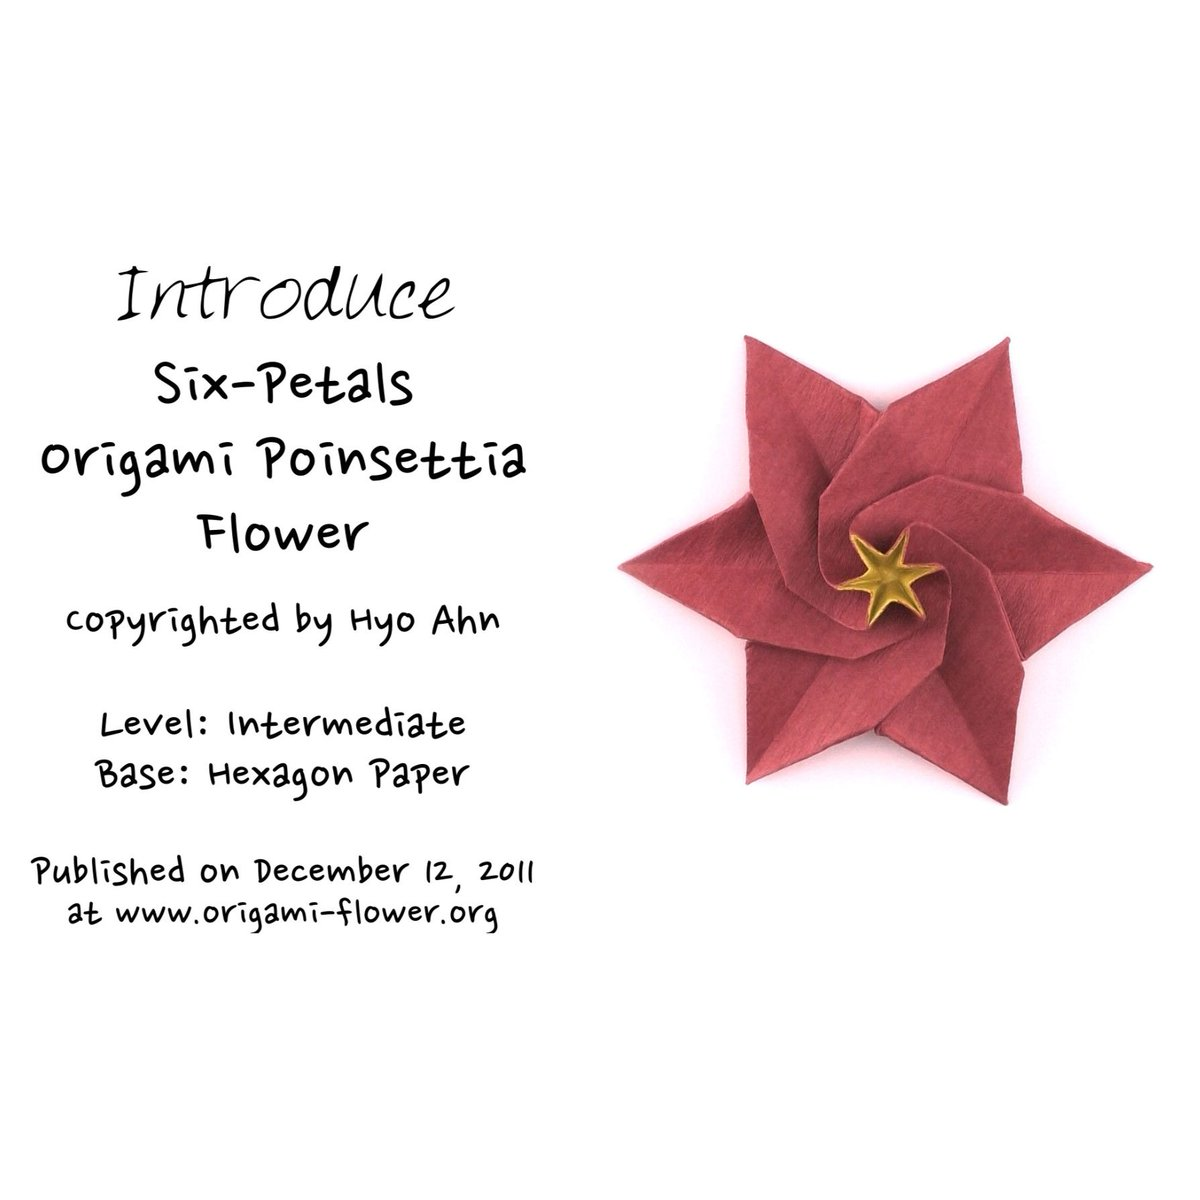 Hyo Ahn On Twitter Introducing A Six Petals Origami Poinsettia